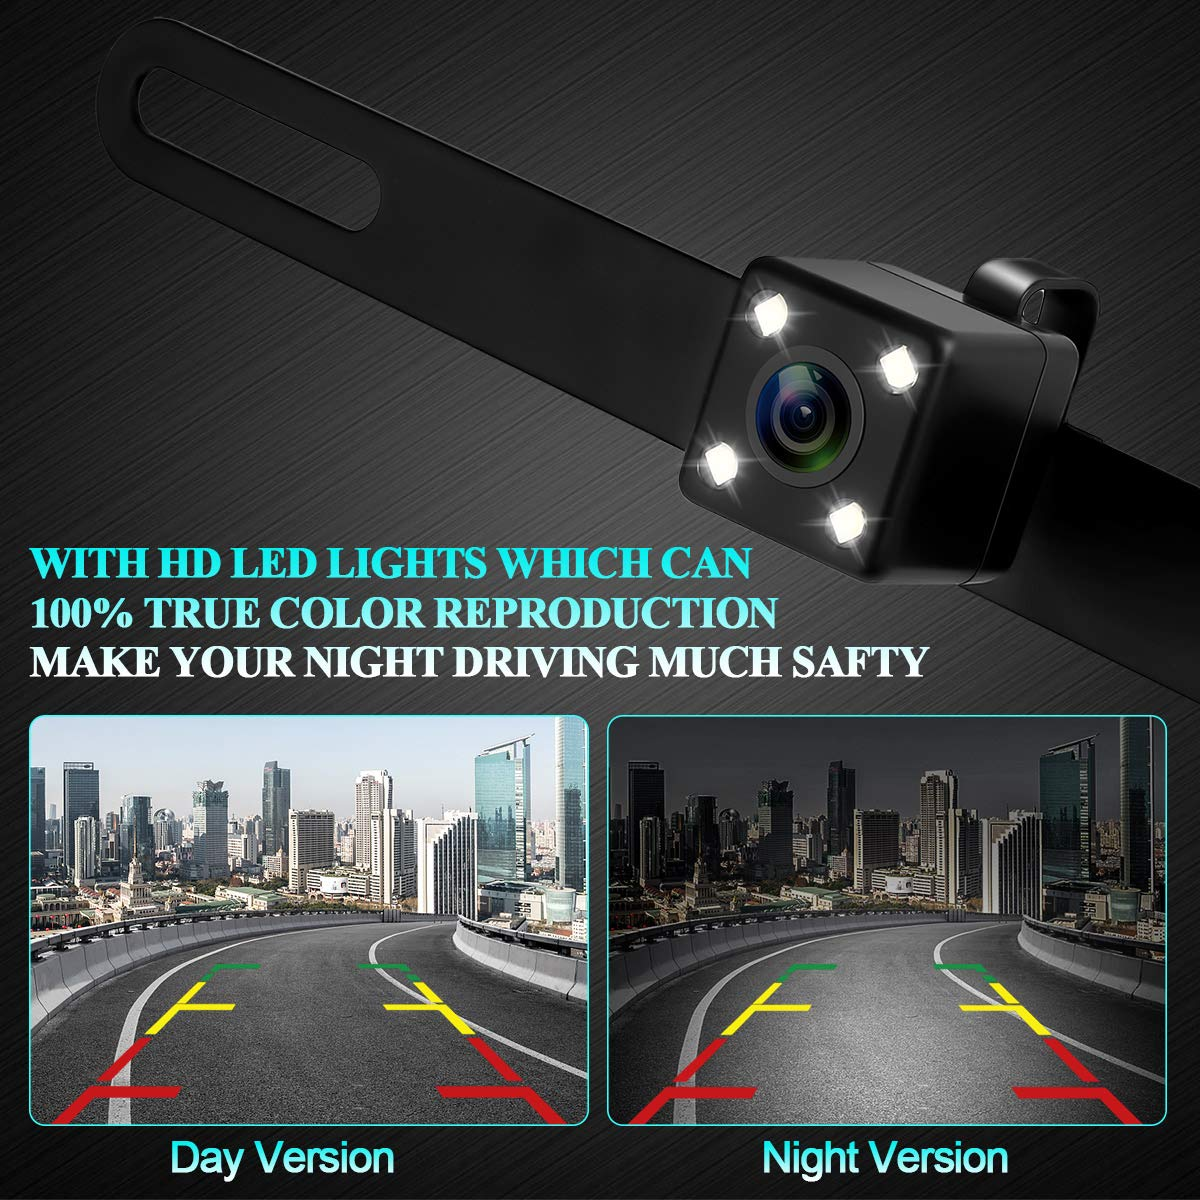 Car Rear View Camera ZSMJ License Plate Backup Camera with Intelligence Button Forward Facing//Reverse Camera Night Vision Waterproof 4 PIN Cable Easy Installation Dohonest 4350452605